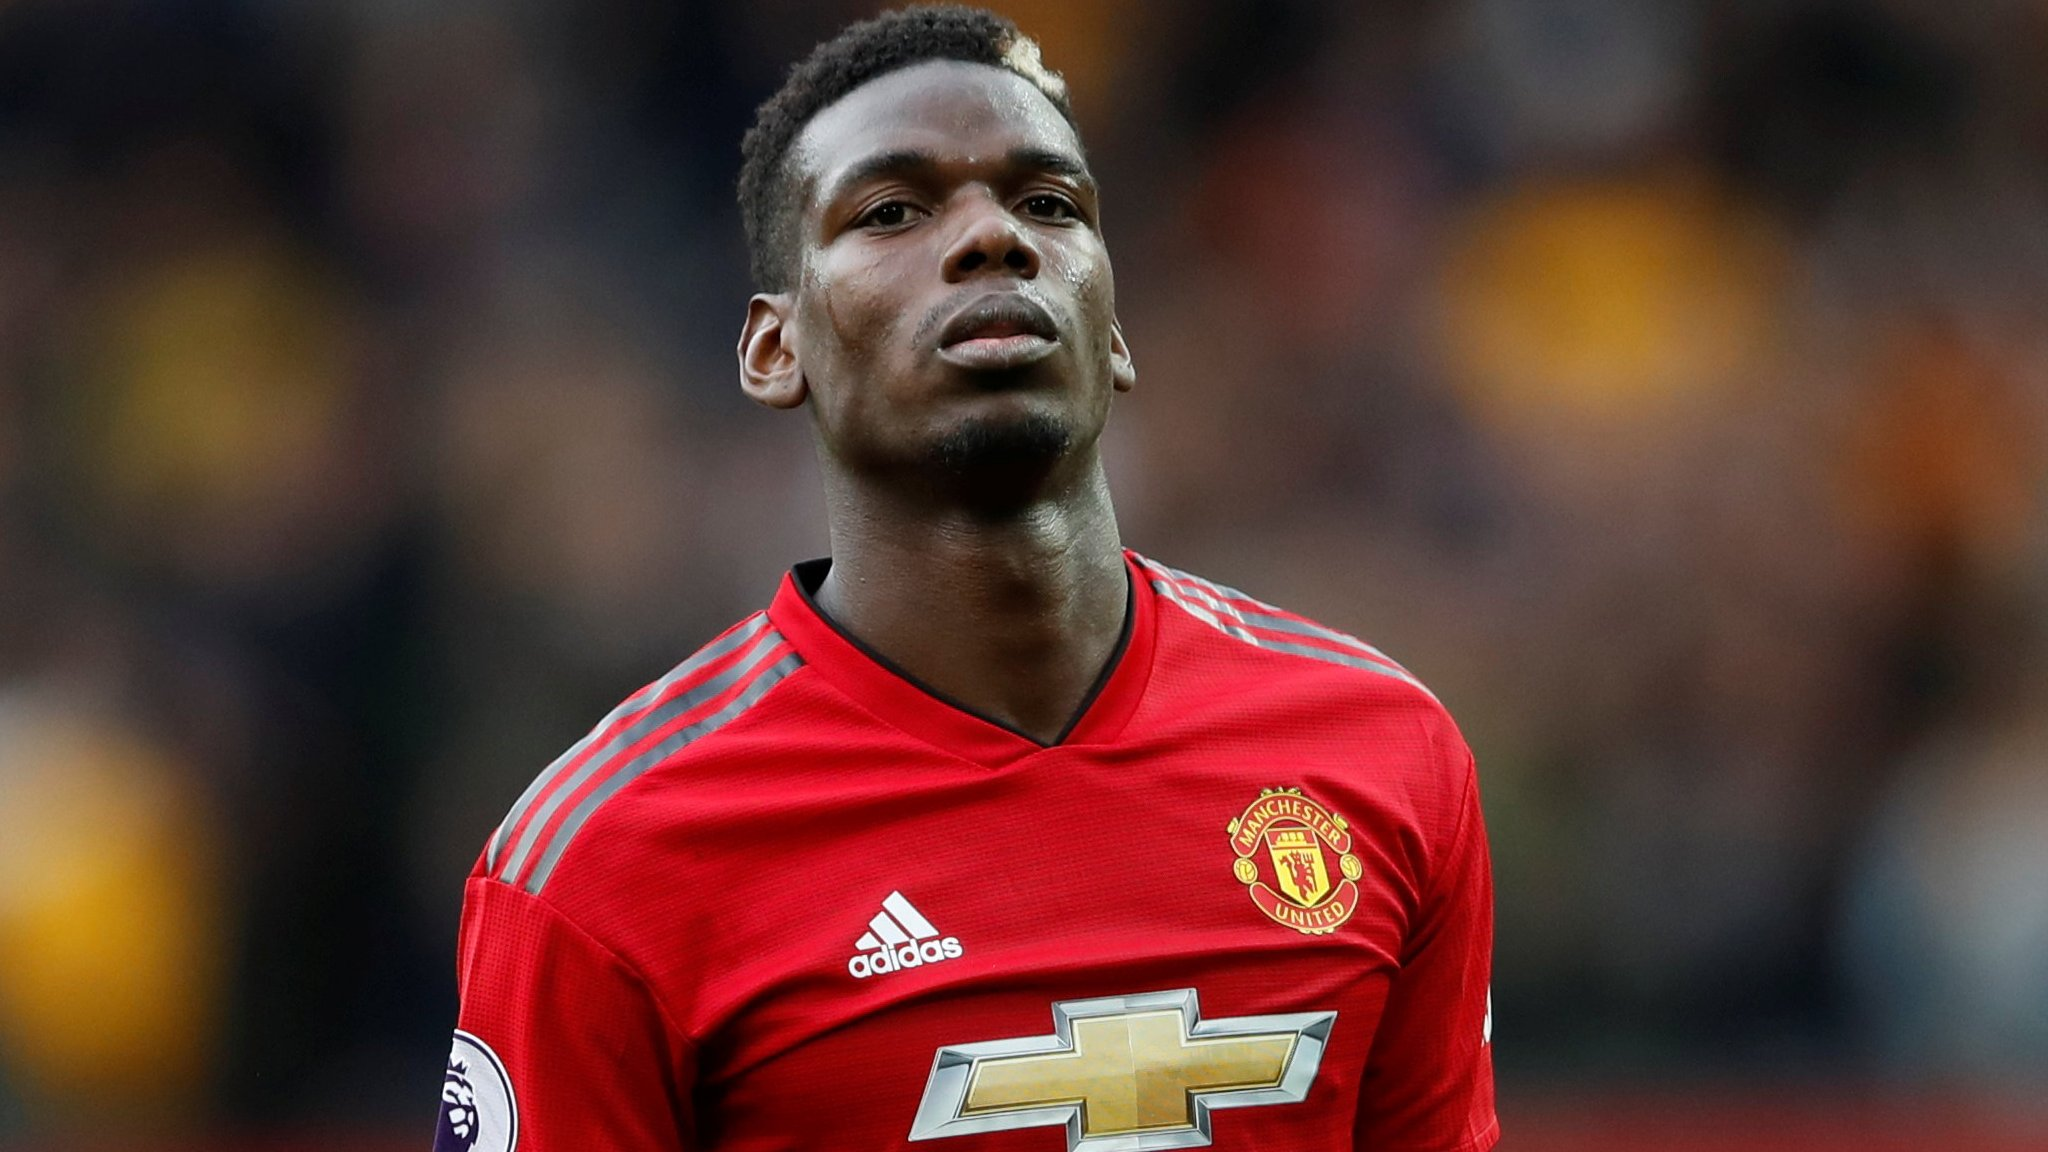 Man Utd: Jose Mourinho says Paul Pogba will not captain club again